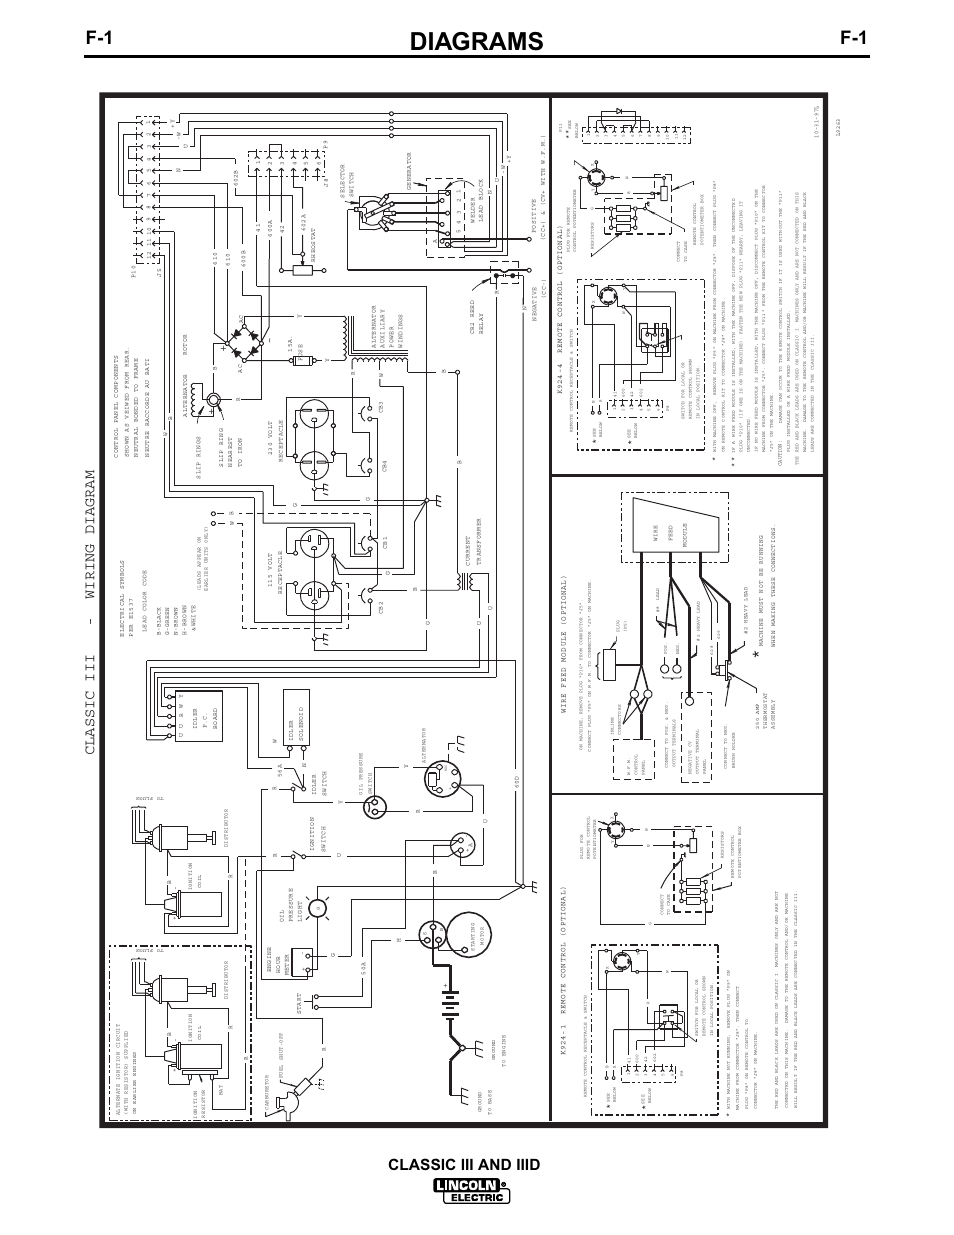 medium resolution of diagrams classic iii and iiid classic iii wiring diagram lincoln electric im529